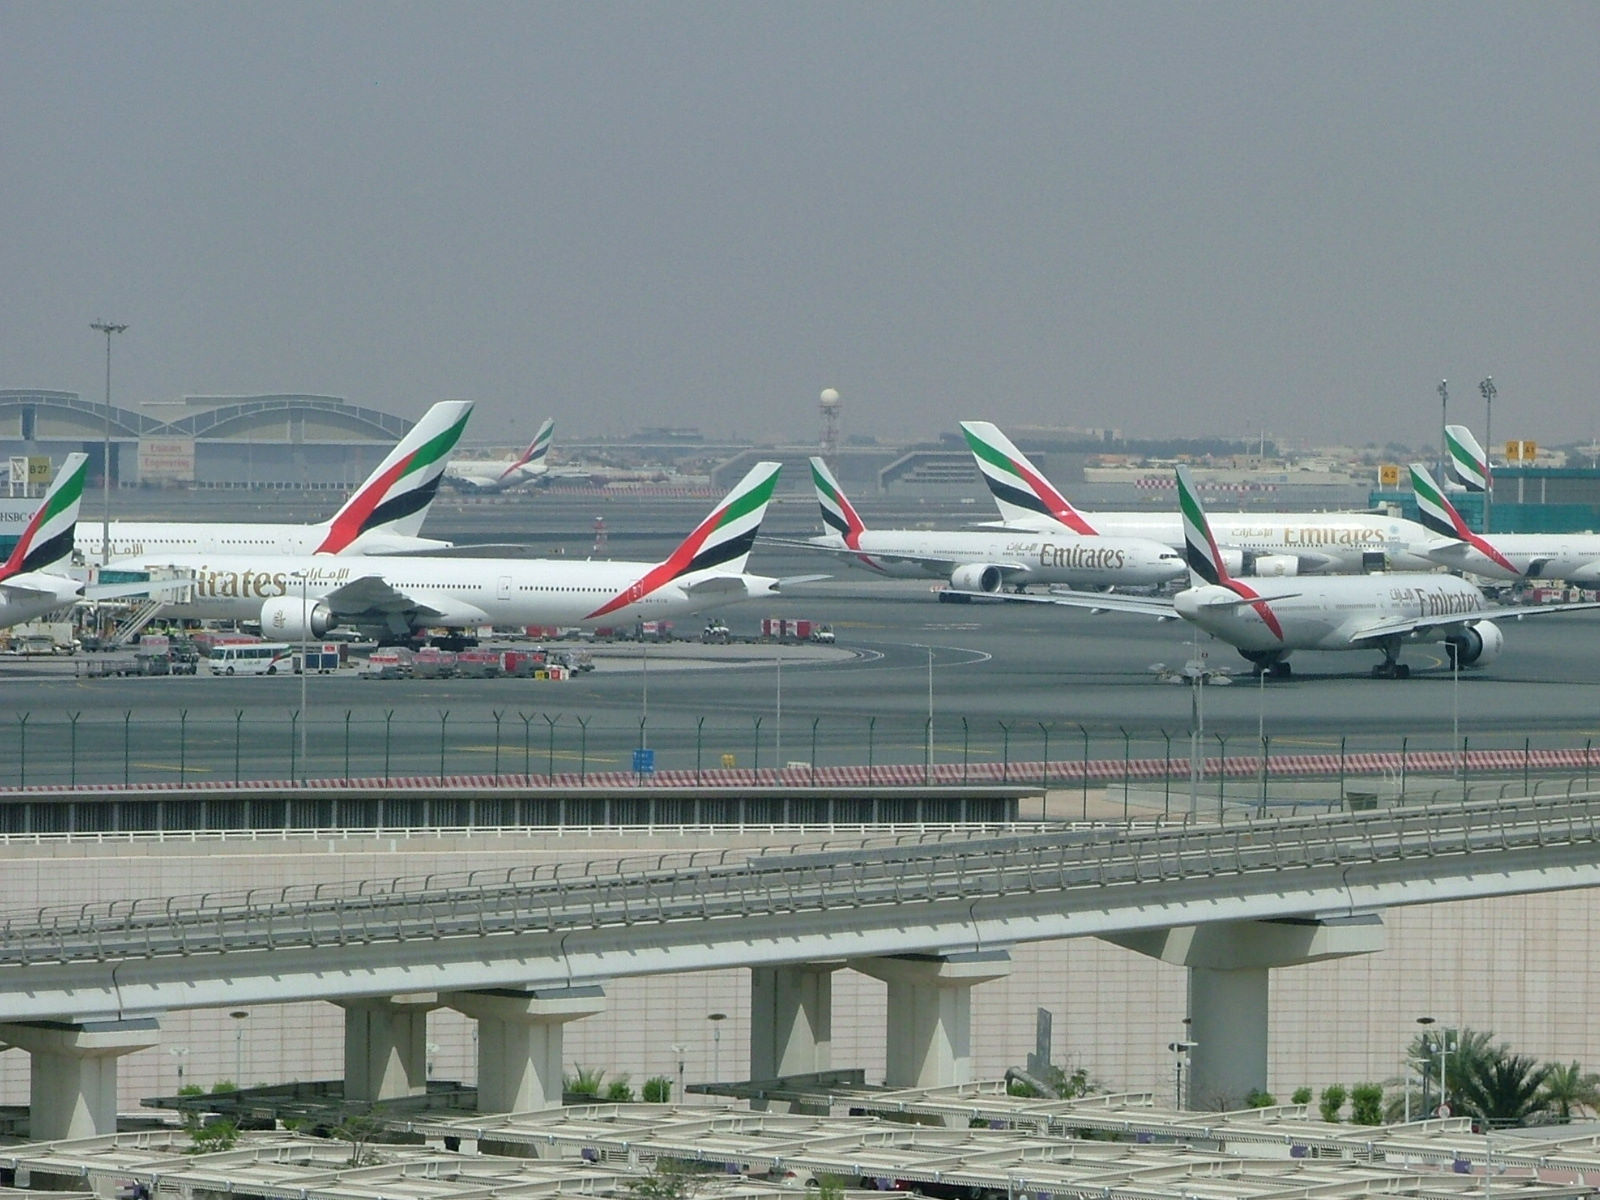 View from the Premier Inn Dubai Airport spotting hotel